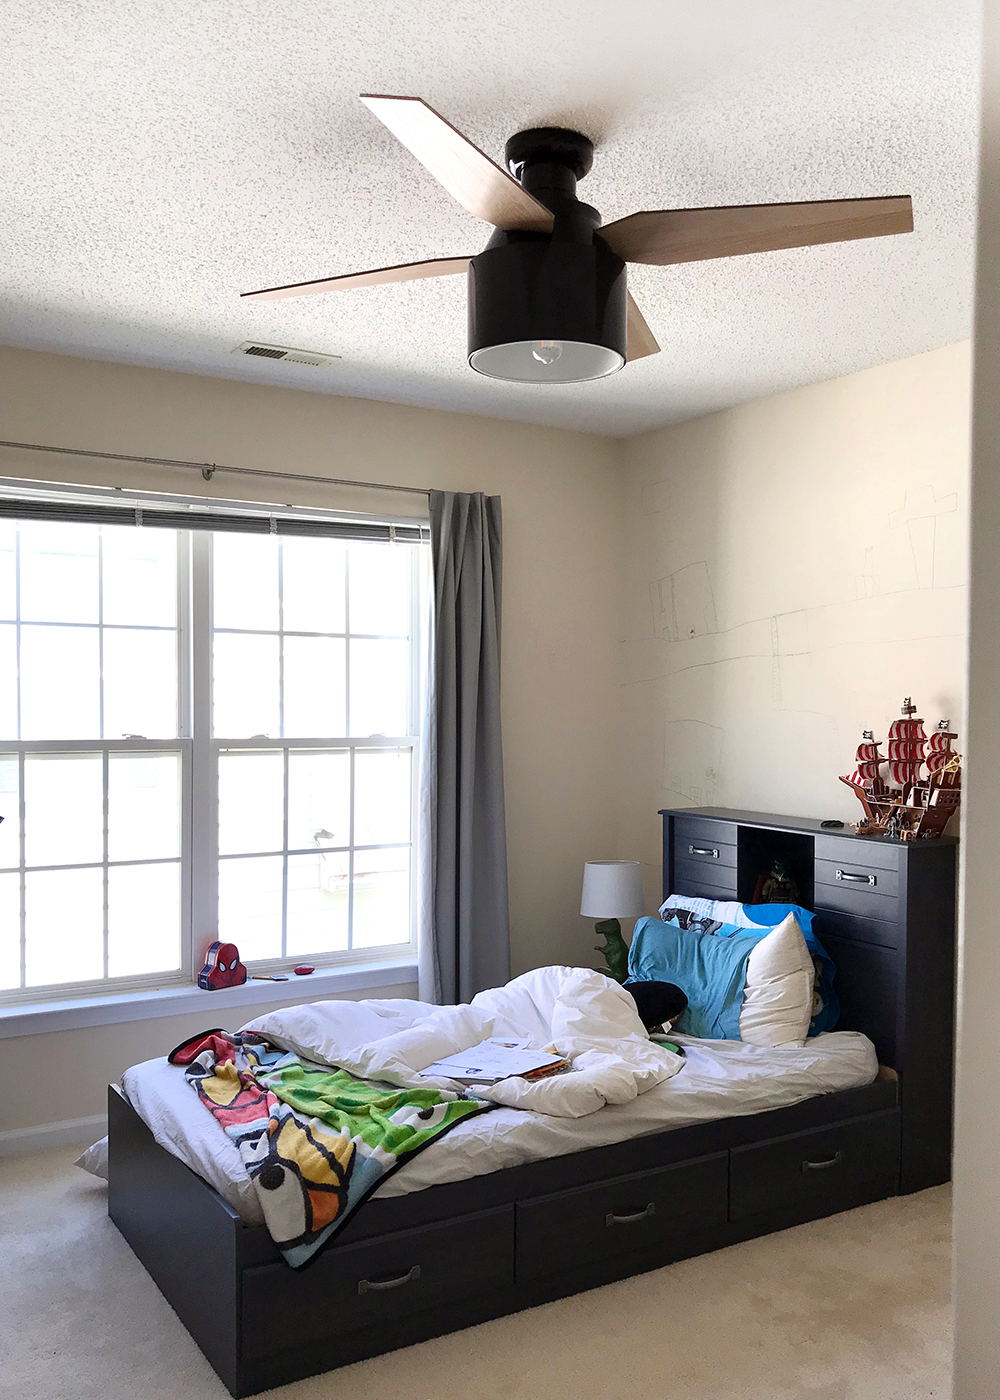 Loving the new ceiling fan